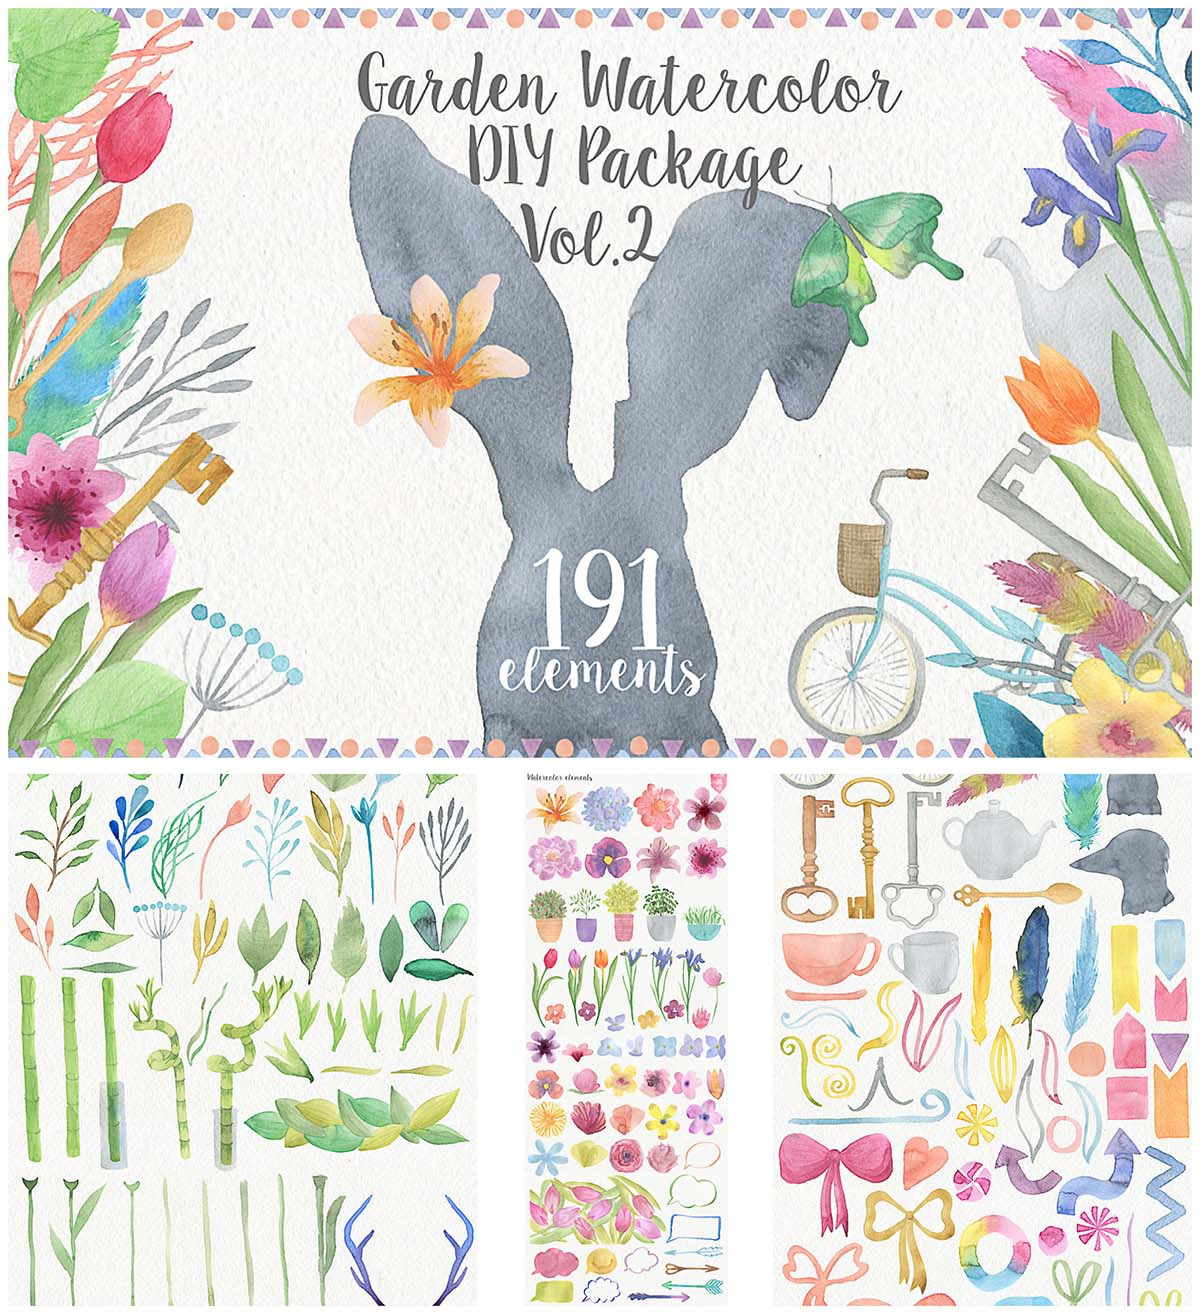 Watercolor garden illustration set